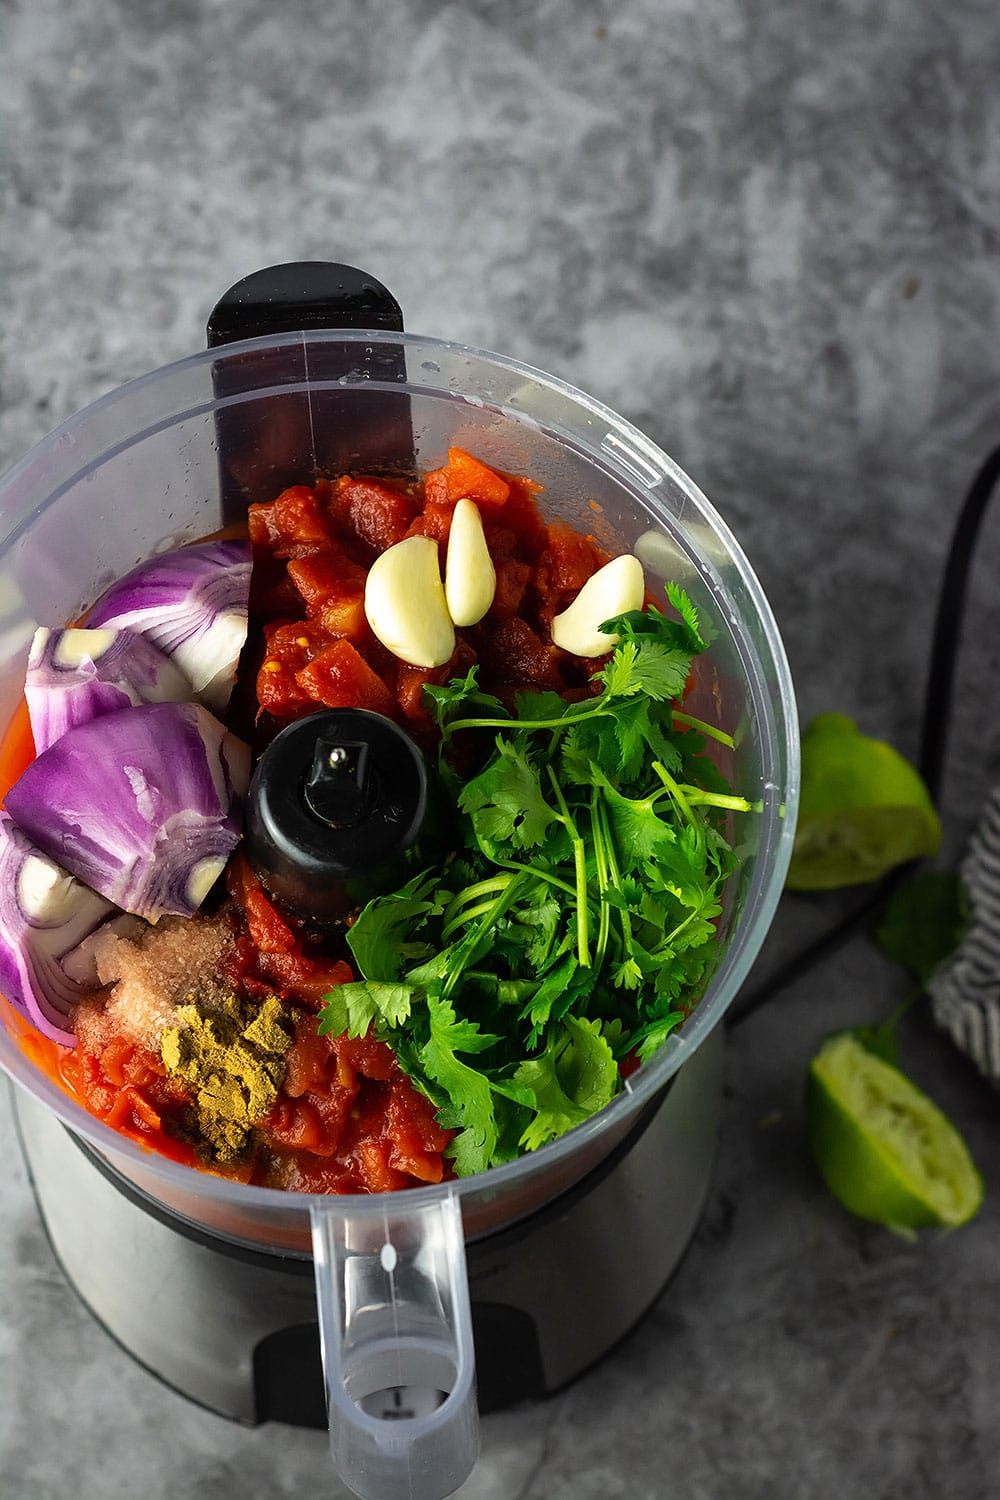 Ingredients for simple salsa in the bowl of a food processor